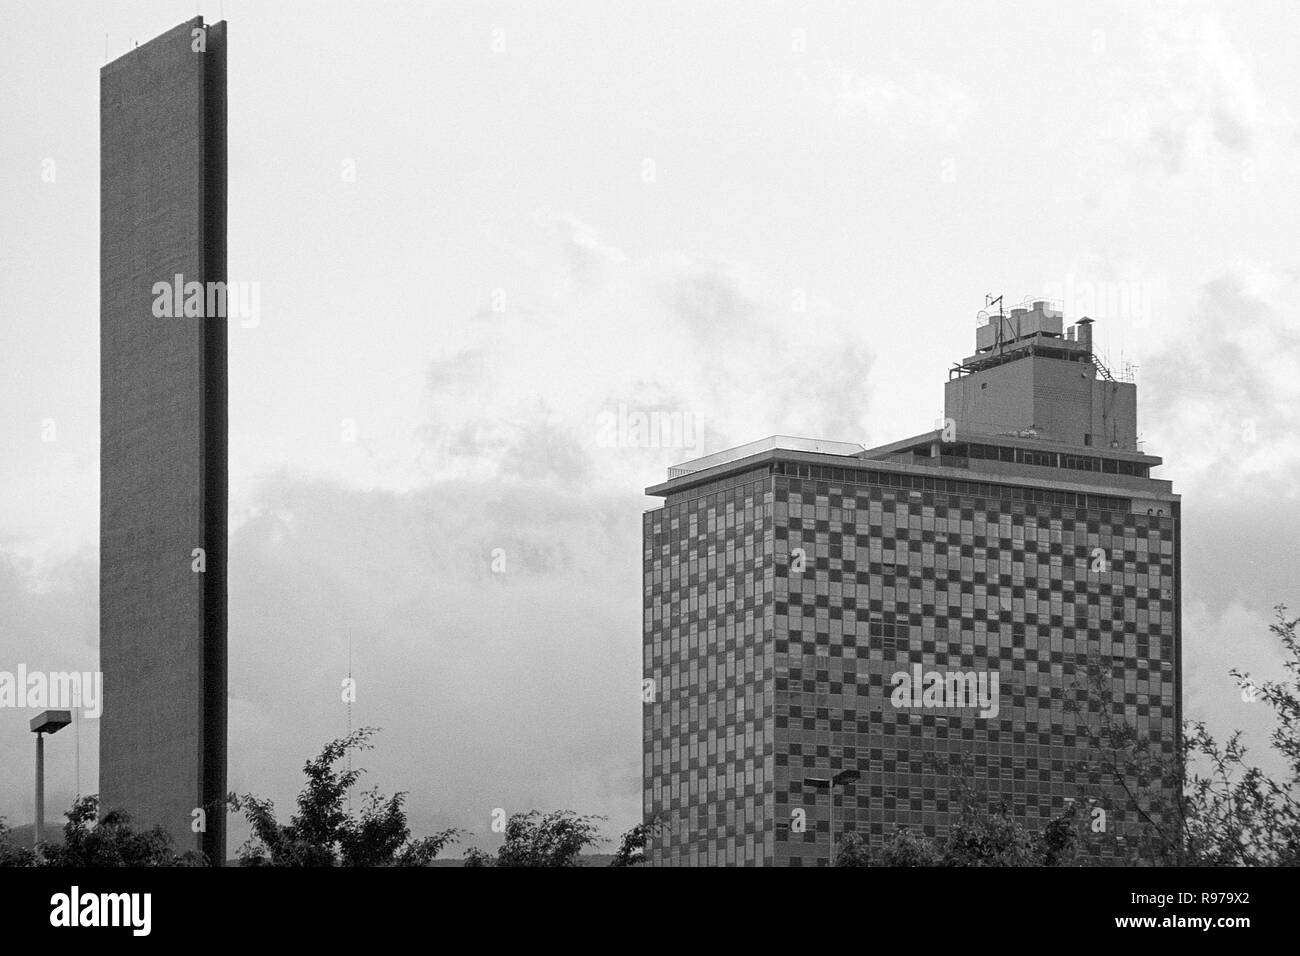 MONTERREY, NL/MEXICO - NOV 2, 2003: The Commerce Lighthouse by Luis Barragan, built by Raul Ferrera, and the Condominio Acero building, Macroplaza Stock Photo